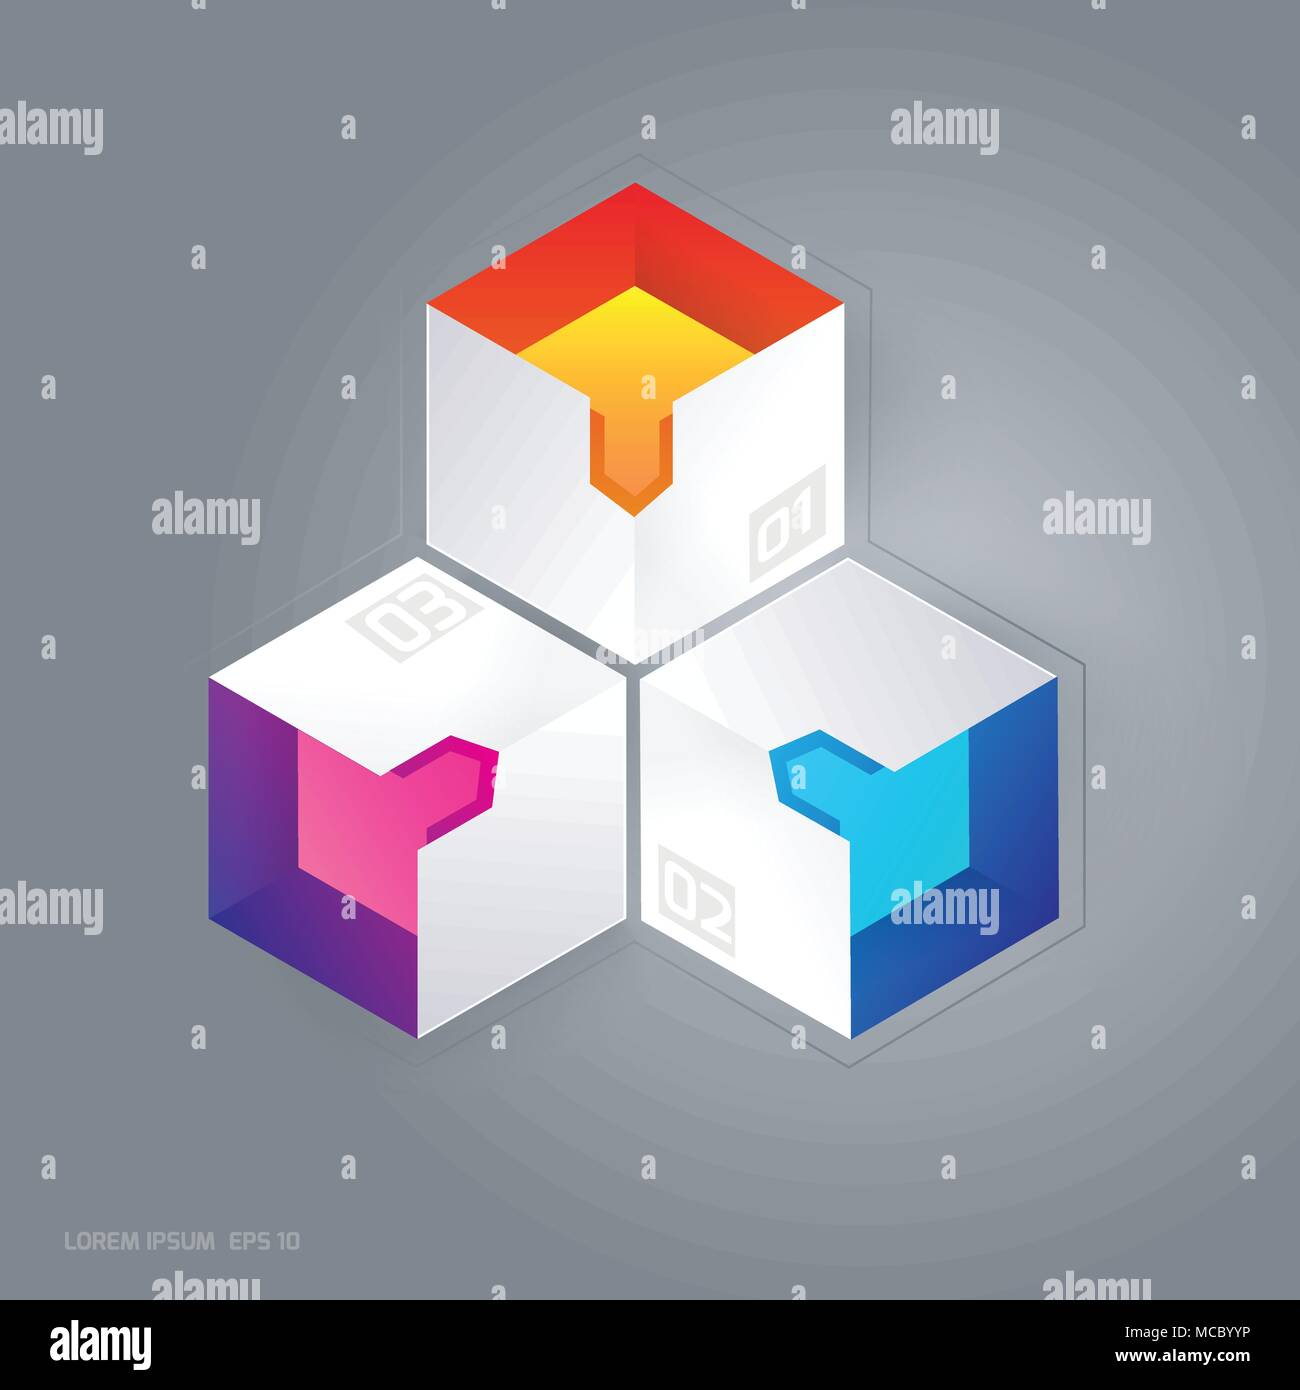 Abstract 3D cubic infographic vector illustration suitable for web graphic design. Stock Vector